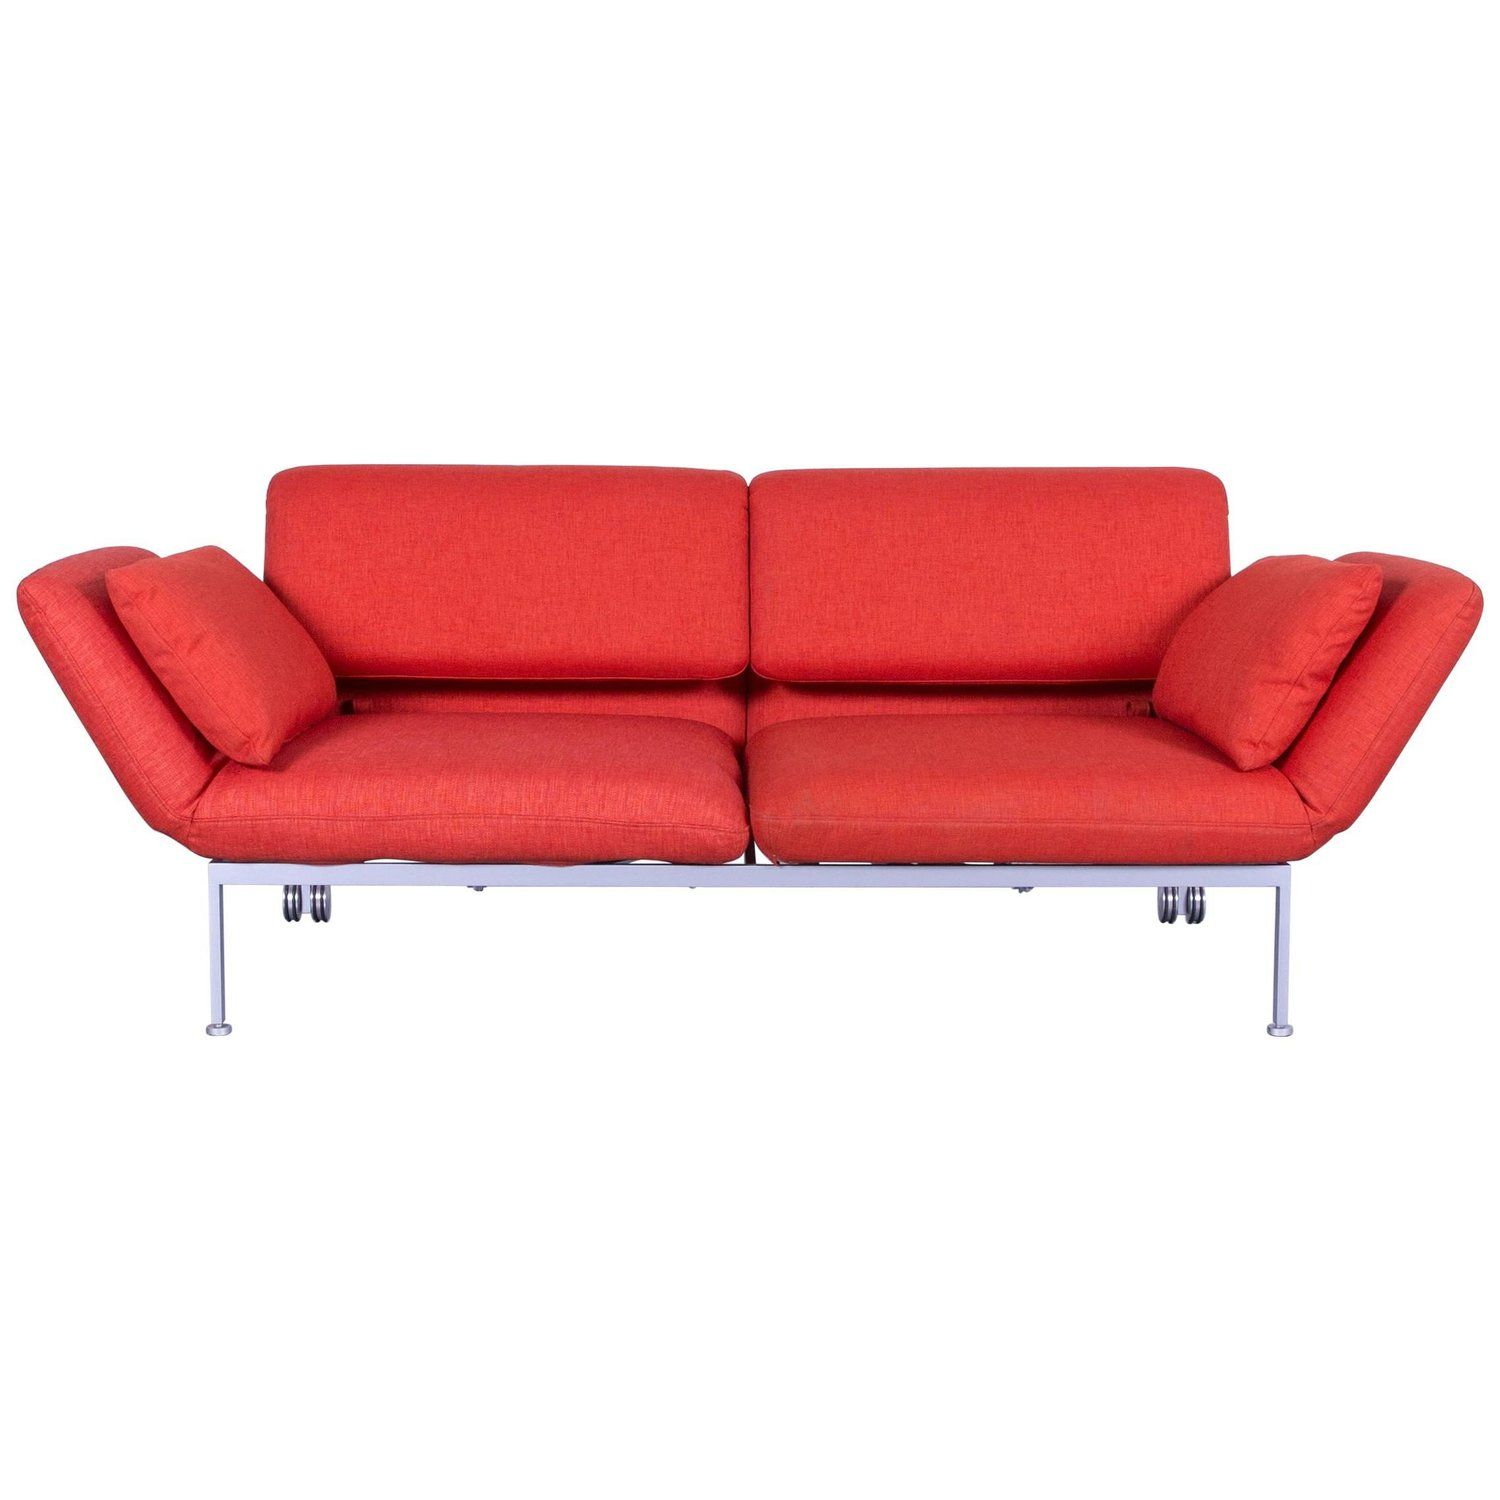 Sofa Bed For Sale Regina Brühl And Sippold Roro Designer Bed Sofa In Red Orange Fabric With